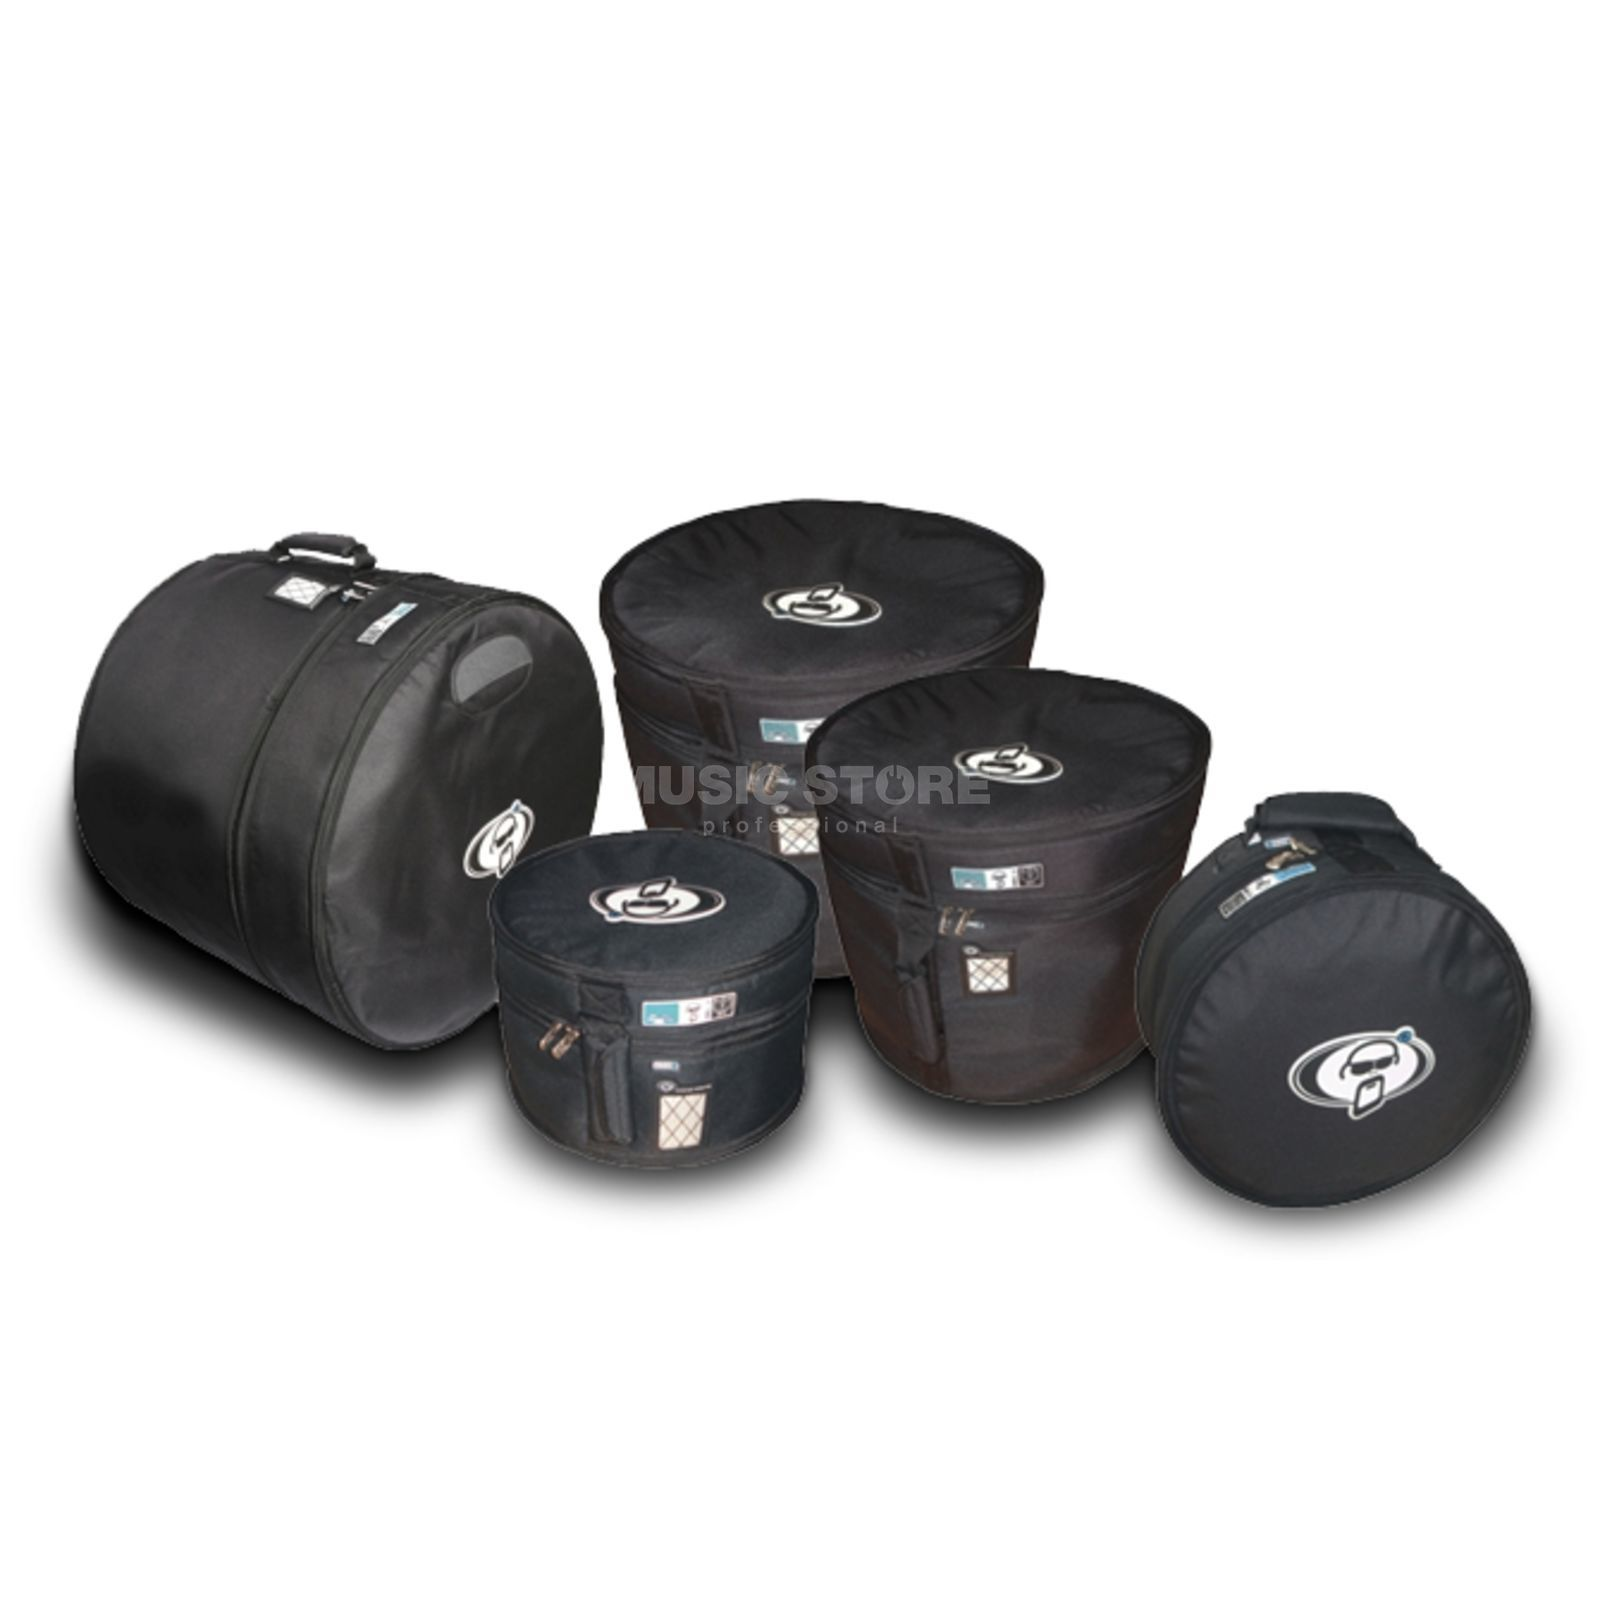 "Protection Racket BagSet SET 3, 24""x18"", 12""x9"", 14""x14"", 16""x16"", 14""x6,5"" Produktbild"